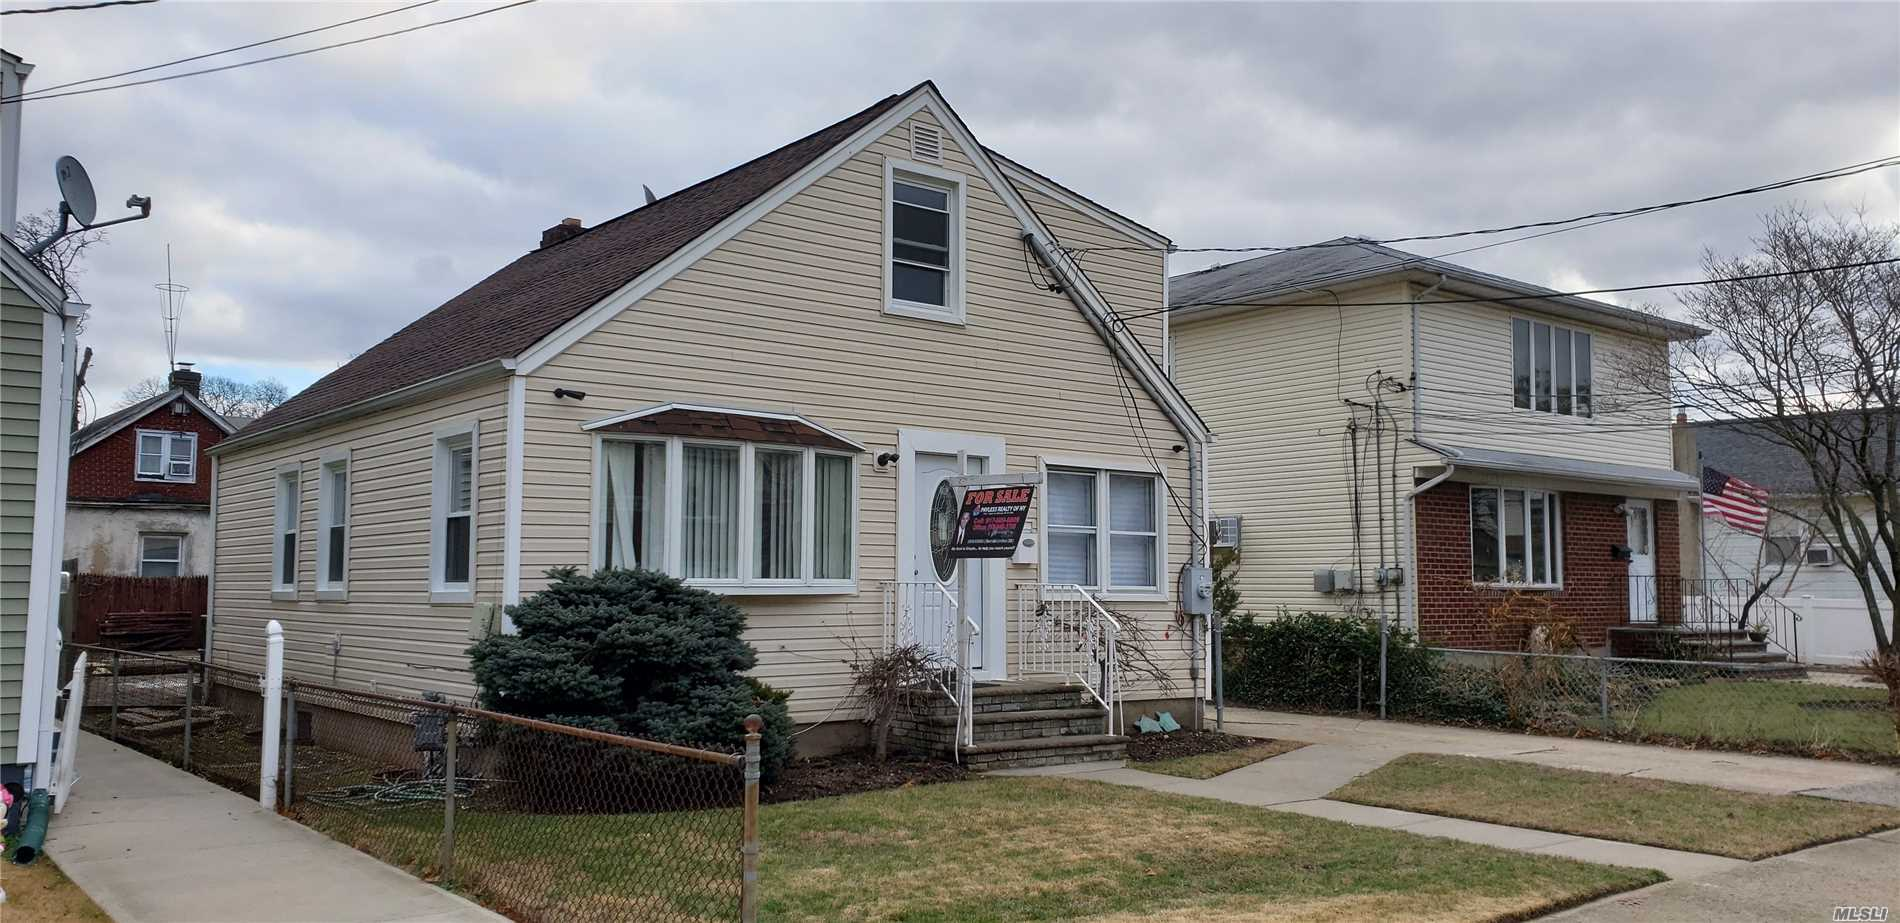 Fully Renovated 1 Family, New Kitchen With Granite Counter Top, Stainless Steel Appliances, Hardwood Floor Through Out, New Plumbing, New Electrical, New Windows, New Bathroom, New Roof. Property Detached With Private Driveway 1.5 Garage 40X100 Lot.